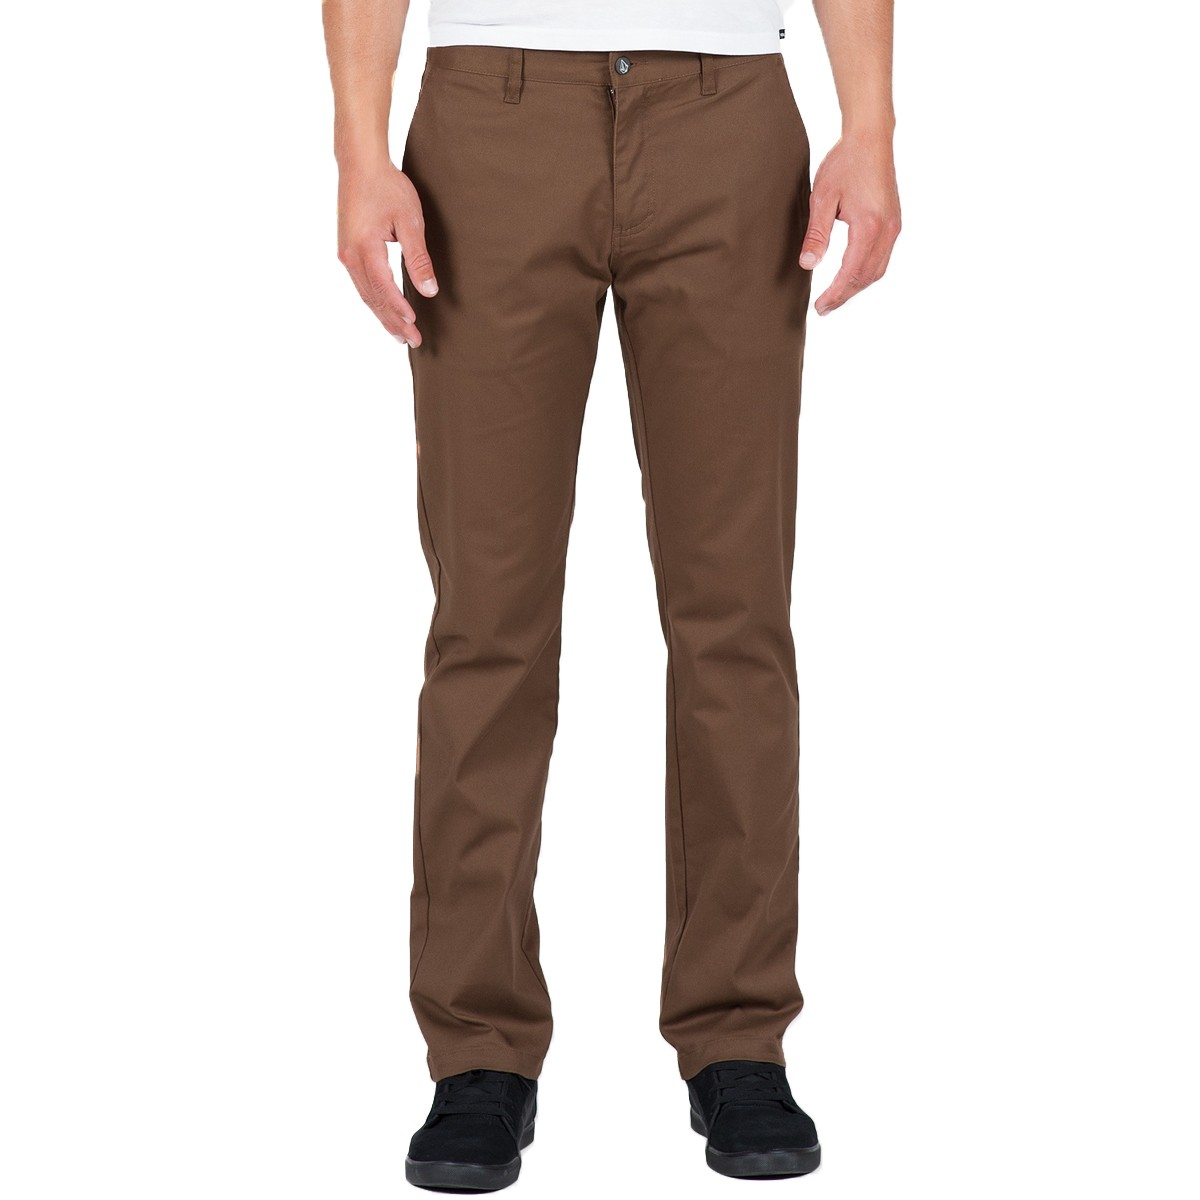 Volcom Frickin Modern Stretch Chino Pants - Brown